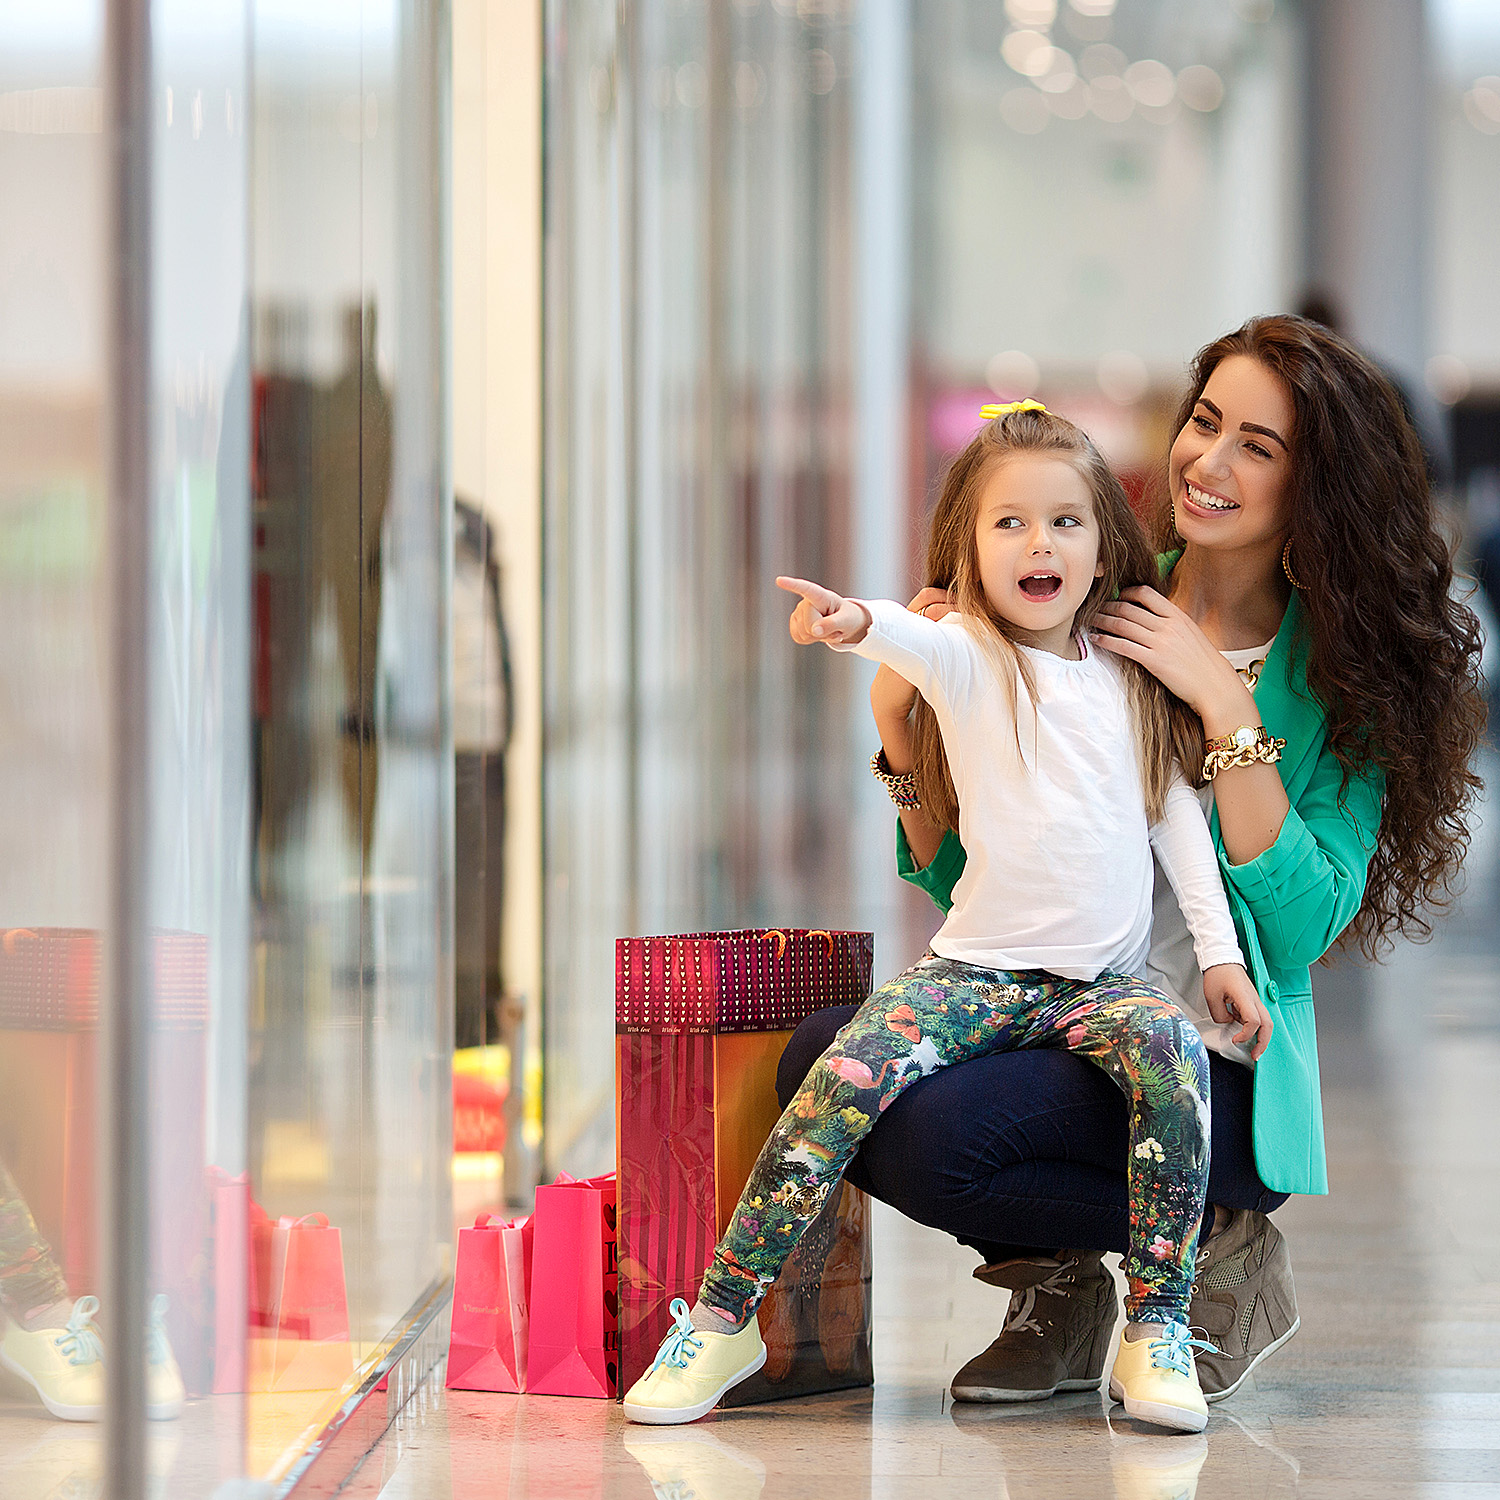 Little girl in mall, pointing excitedly at something she wants her mom to see, mom is kneeling beside her, smiling